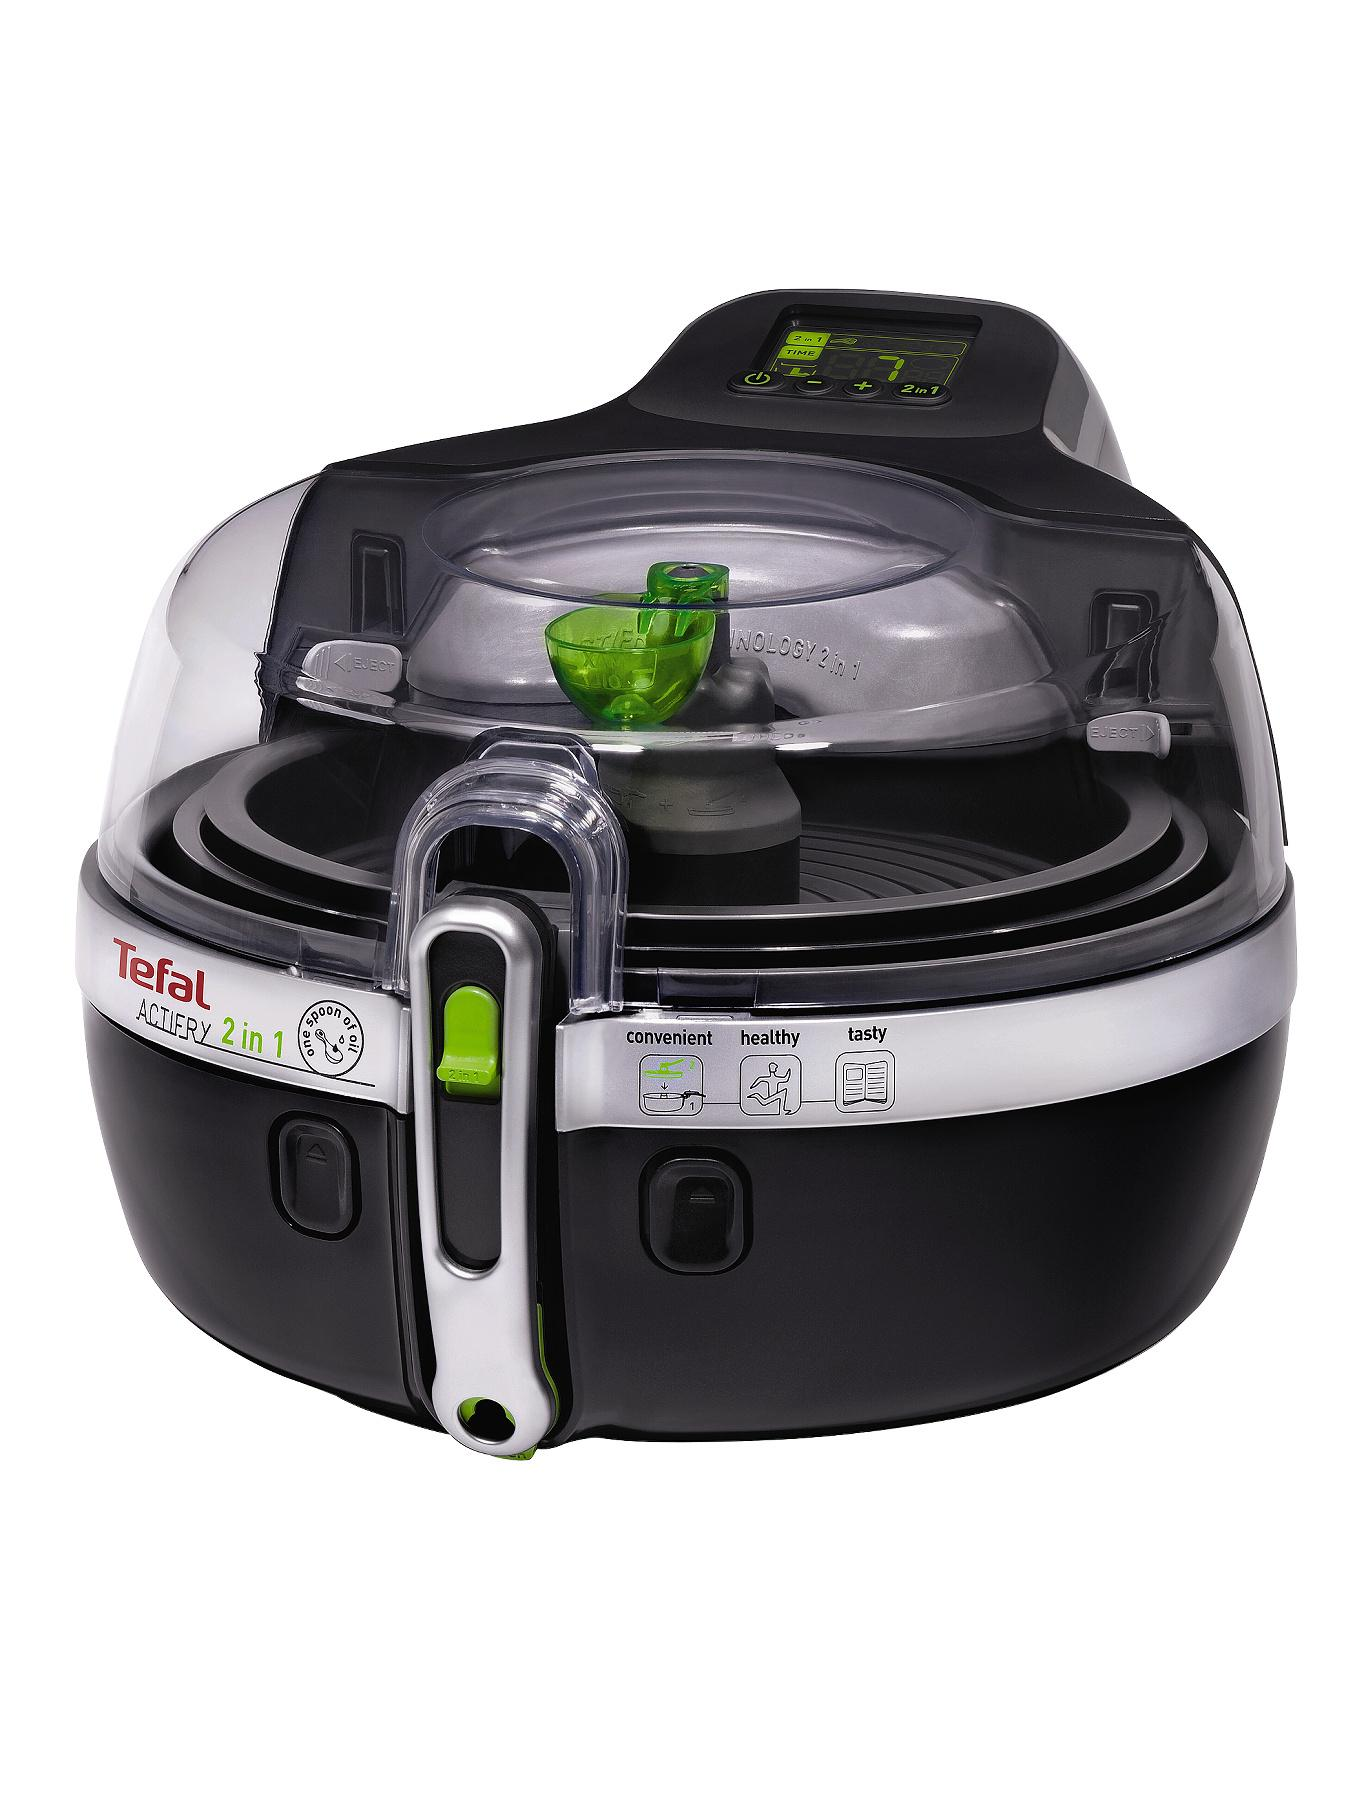 YV9601 1.5kg 2in1 Actifry Black